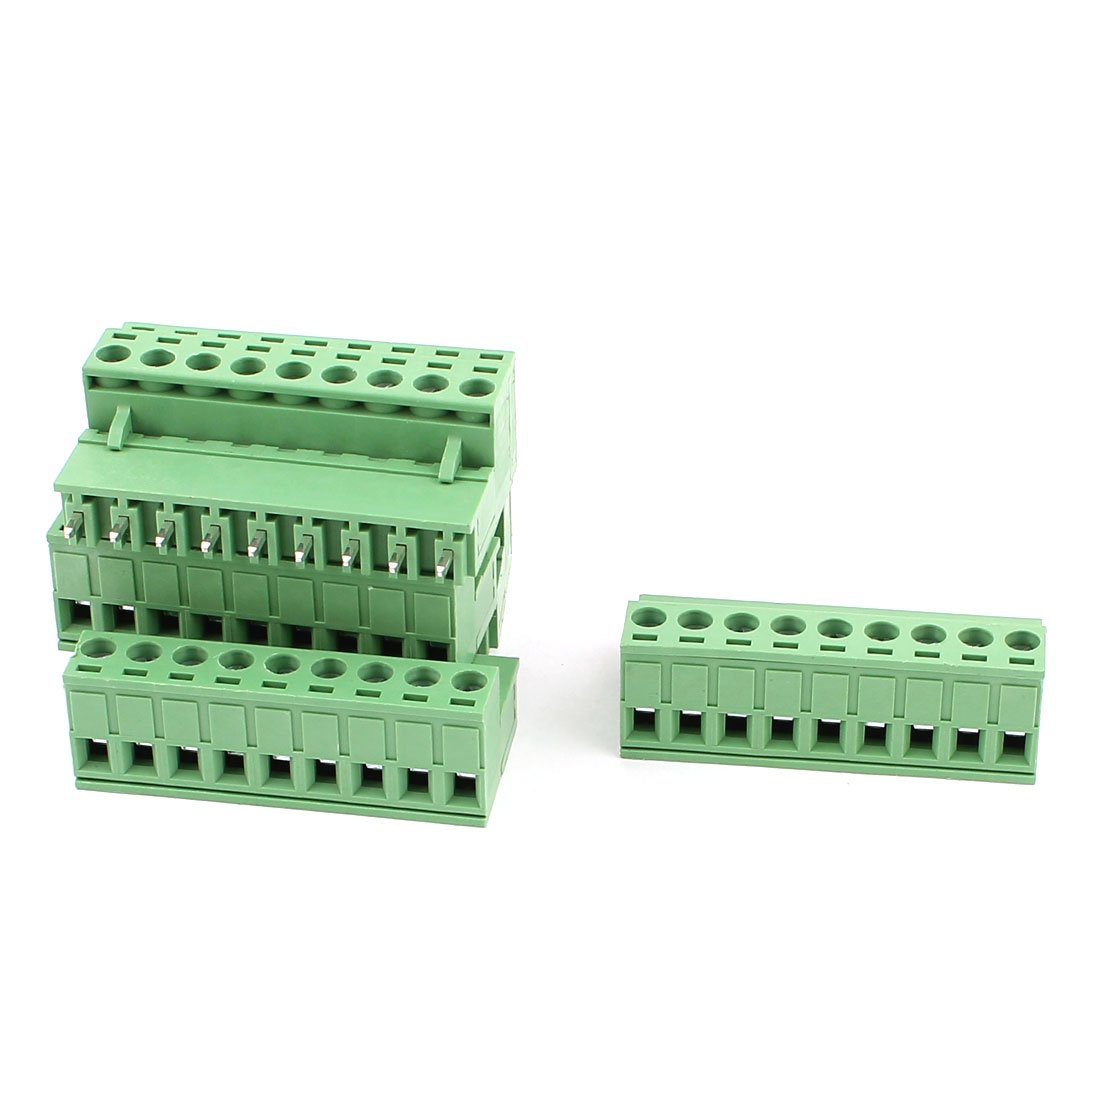 uxcell AC 300V 10A 9 Pins PCB Screw Terminal Block 5.08mm Pitch 6 Pcs Green